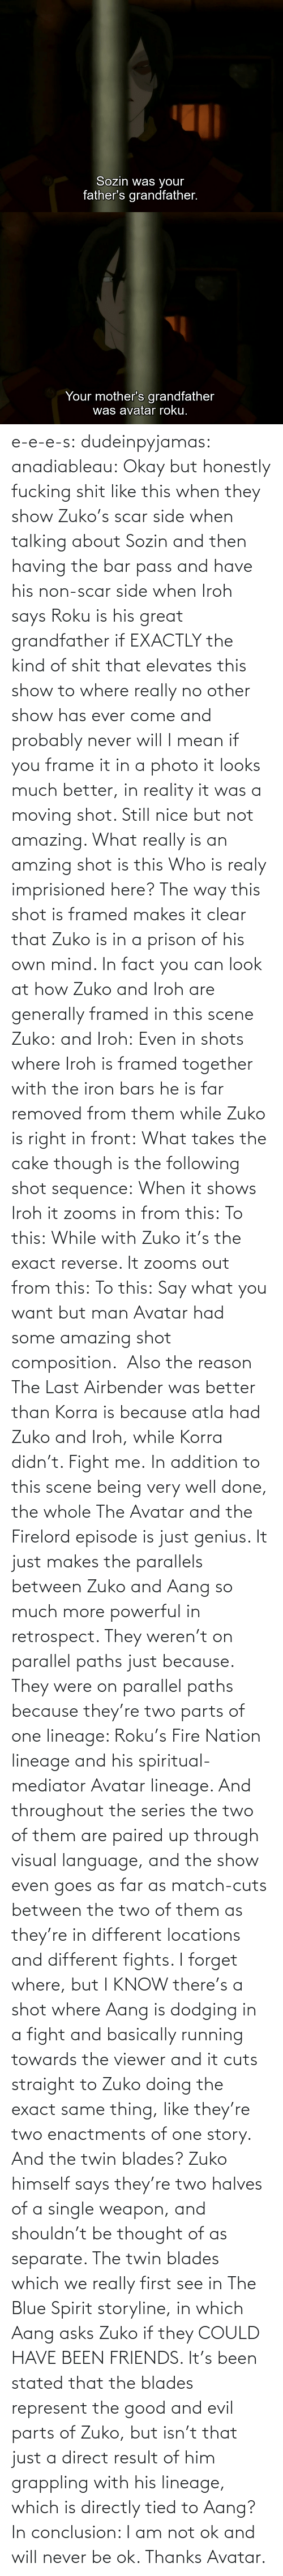 and then: e-e-e-s: dudeinpyjamas:   anadiableau: Okay but honestly fucking shit like this when they show Zuko's scar side when talking about Sozin and then having the bar pass and have his non-scar side when Iroh says Roku is his great grandfather if EXACTLY the kind of shit that elevates this show to where really no other show has ever come and probably never will I mean if you frame it in a photo it looks much better, in reality it was a moving shot. Still nice but not amazing. What really is an amzing shot is this Who is realy imprisioned here? The way this shot is framed makes it clear that Zuko is in a prison of his own mind. In fact you can look at how Zuko and Iroh are generally framed in this scene Zuko: and Iroh: Even in shots where Iroh is framed together with the iron bars he is far removed from them while Zuko is right in front:  What takes the cake though is the following shot sequence: When it shows Iroh it zooms in from this: To this: While with Zuko it's the exact reverse. It zooms out from this: To this: Say what you want but man Avatar had some amazing shot composition.   Also the reason The Last Airbender was better than Korra is because atla had Zuko and Iroh, while Korra didn't. Fight me.    In addition to this scene being very well done, the whole The Avatar and the Firelord episode is just genius.  It just makes the parallels between Zuko and Aang so much more powerful in retrospect.  They weren't on parallel paths just because.  They were on parallel paths because they're two parts of one lineage: Roku's Fire Nation lineage and his spiritual-mediator Avatar lineage.  And throughout the series the two of them are paired up through visual language, and the show even goes as far as match-cuts between the two of them as they're in different locations and different fights.  I forget where, but I KNOW there's a shot where Aang is dodging in a fight and basically running towards the viewer and it cuts straight to Zuko doing the exact same thing, like they're two enactments of one story.   And the twin blades?  Zuko himself says they're two halves of a single weapon, and shouldn't be thought of as separate.  The twin blades which we really first see in The Blue Spirit storyline, in which Aang asks Zuko if they COULD HAVE BEEN FRIENDS.  It's been stated that the blades represent the good and evil parts of Zuko, but isn't that just a direct result of him grappling with his lineage, which is directly tied to Aang? In conclusion: I am not ok and will never be ok.  Thanks Avatar.